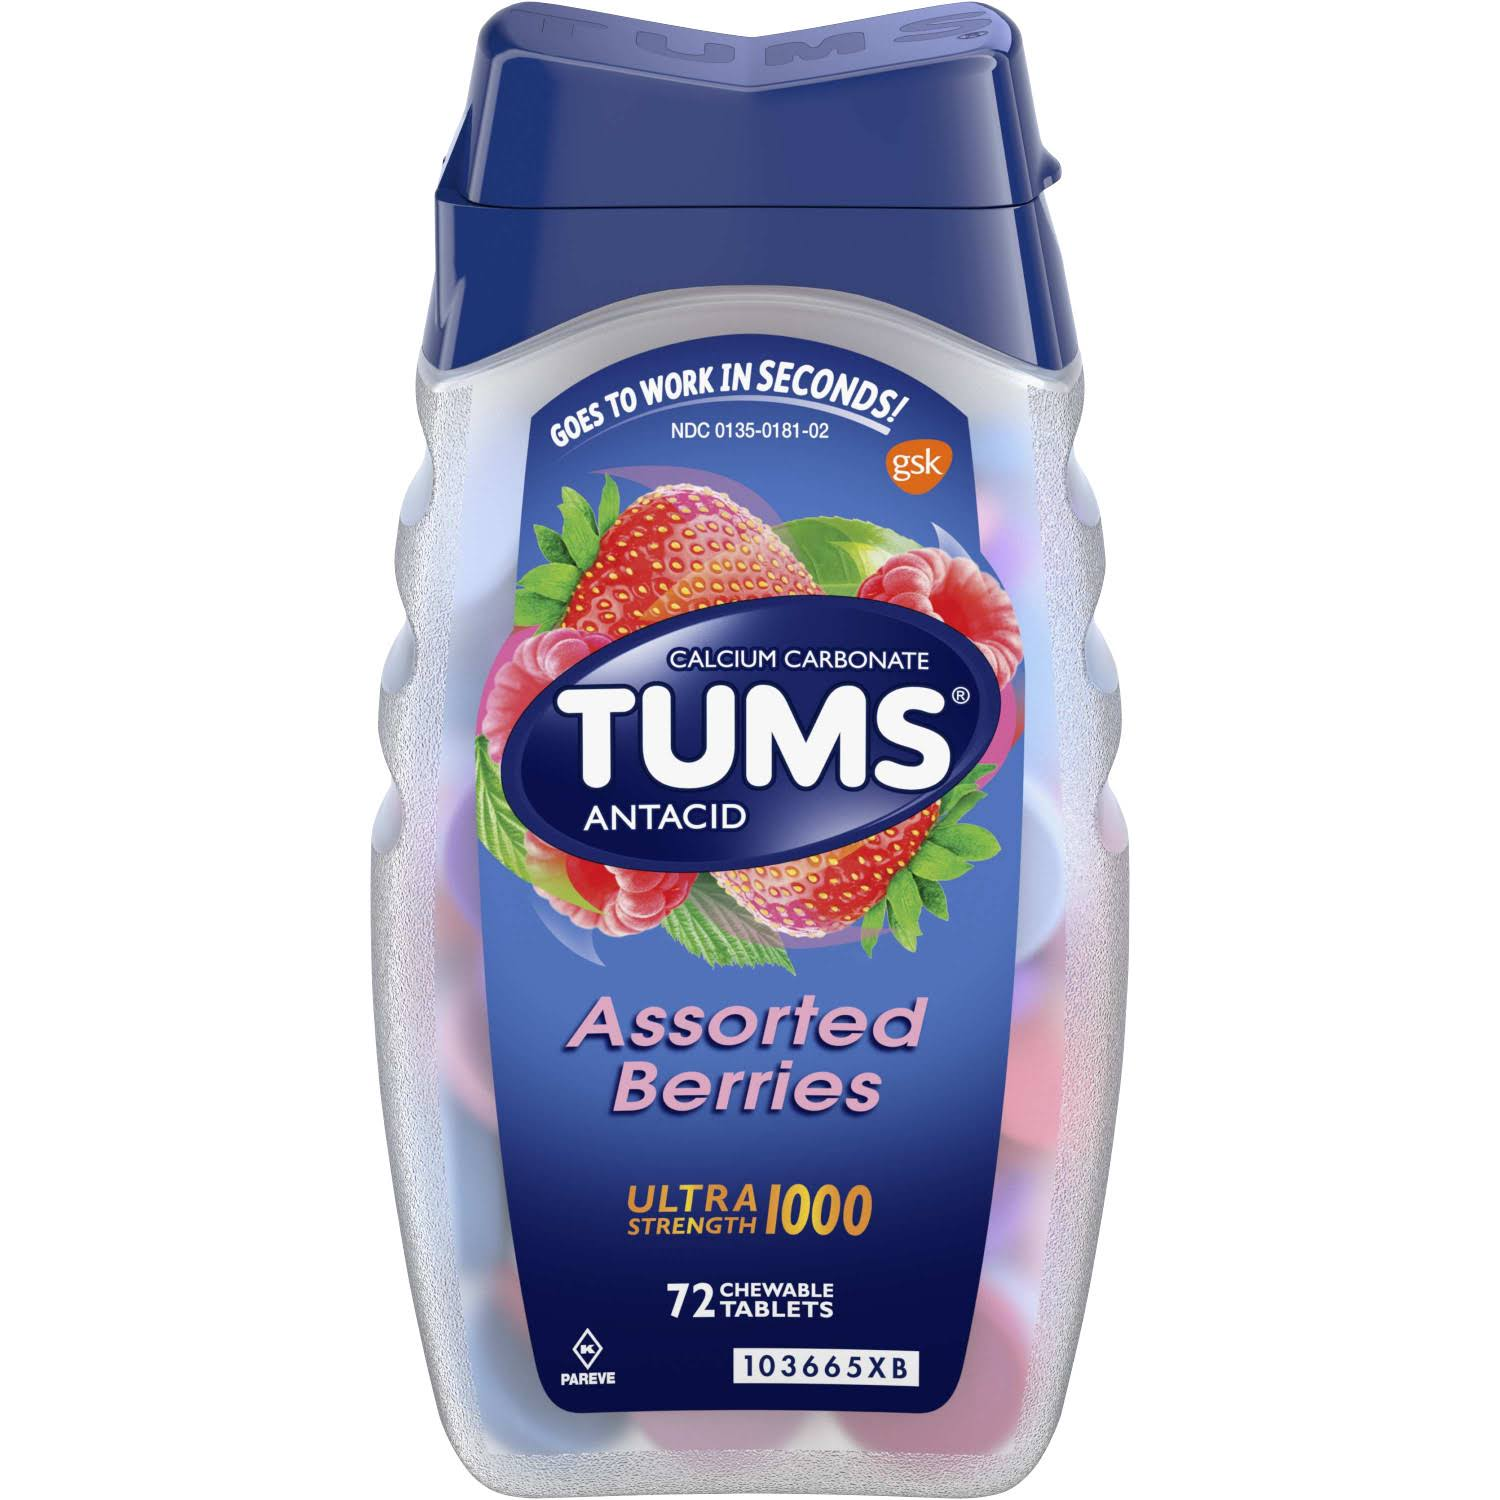 Tums Antacid Calcium Carbonate Assorted Berries